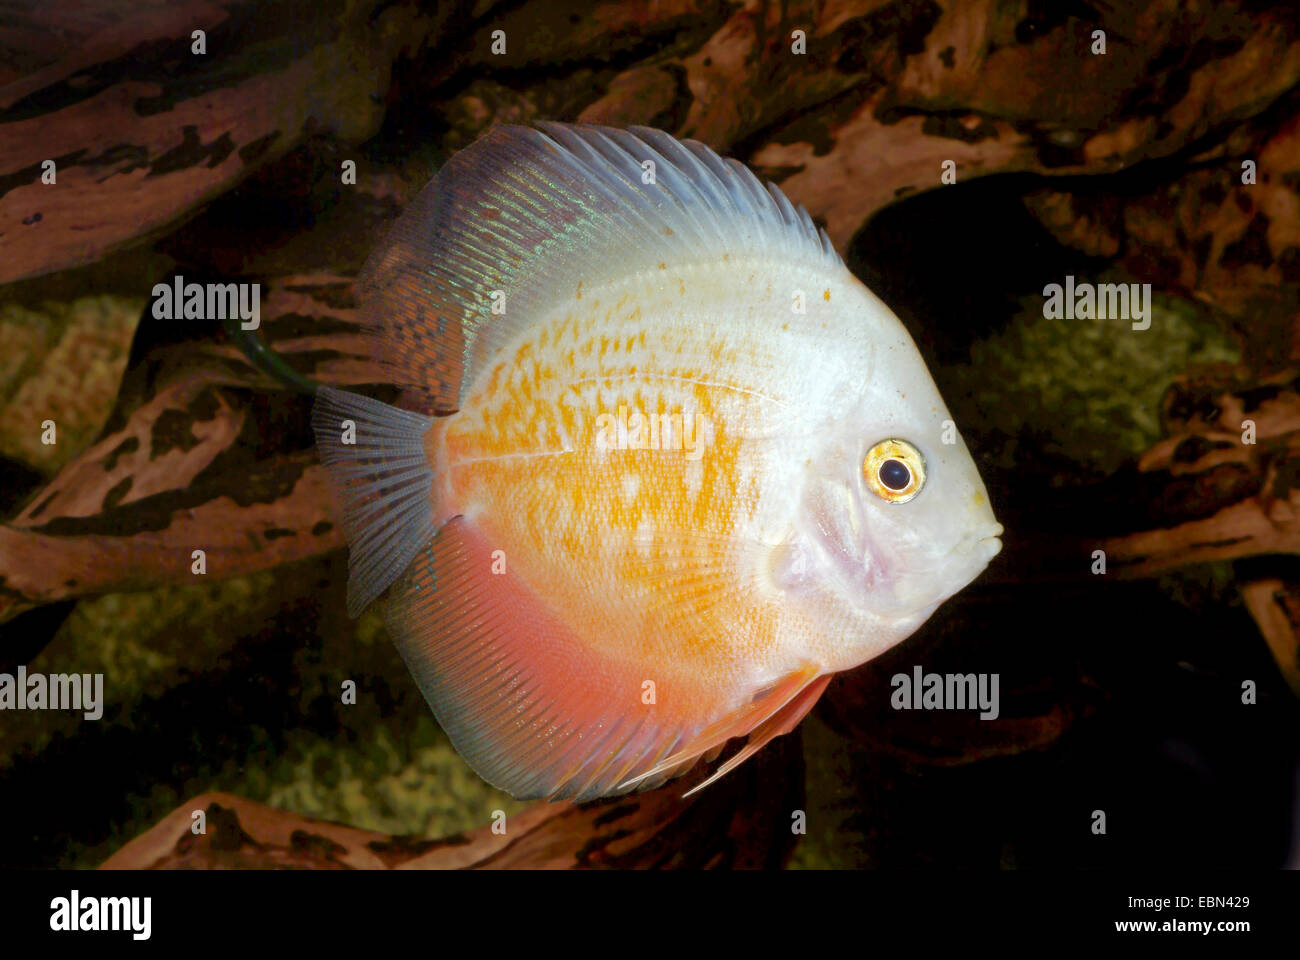 Blue discus (Symphysodon aequifasciatus), breed White and Gold - Stock Image